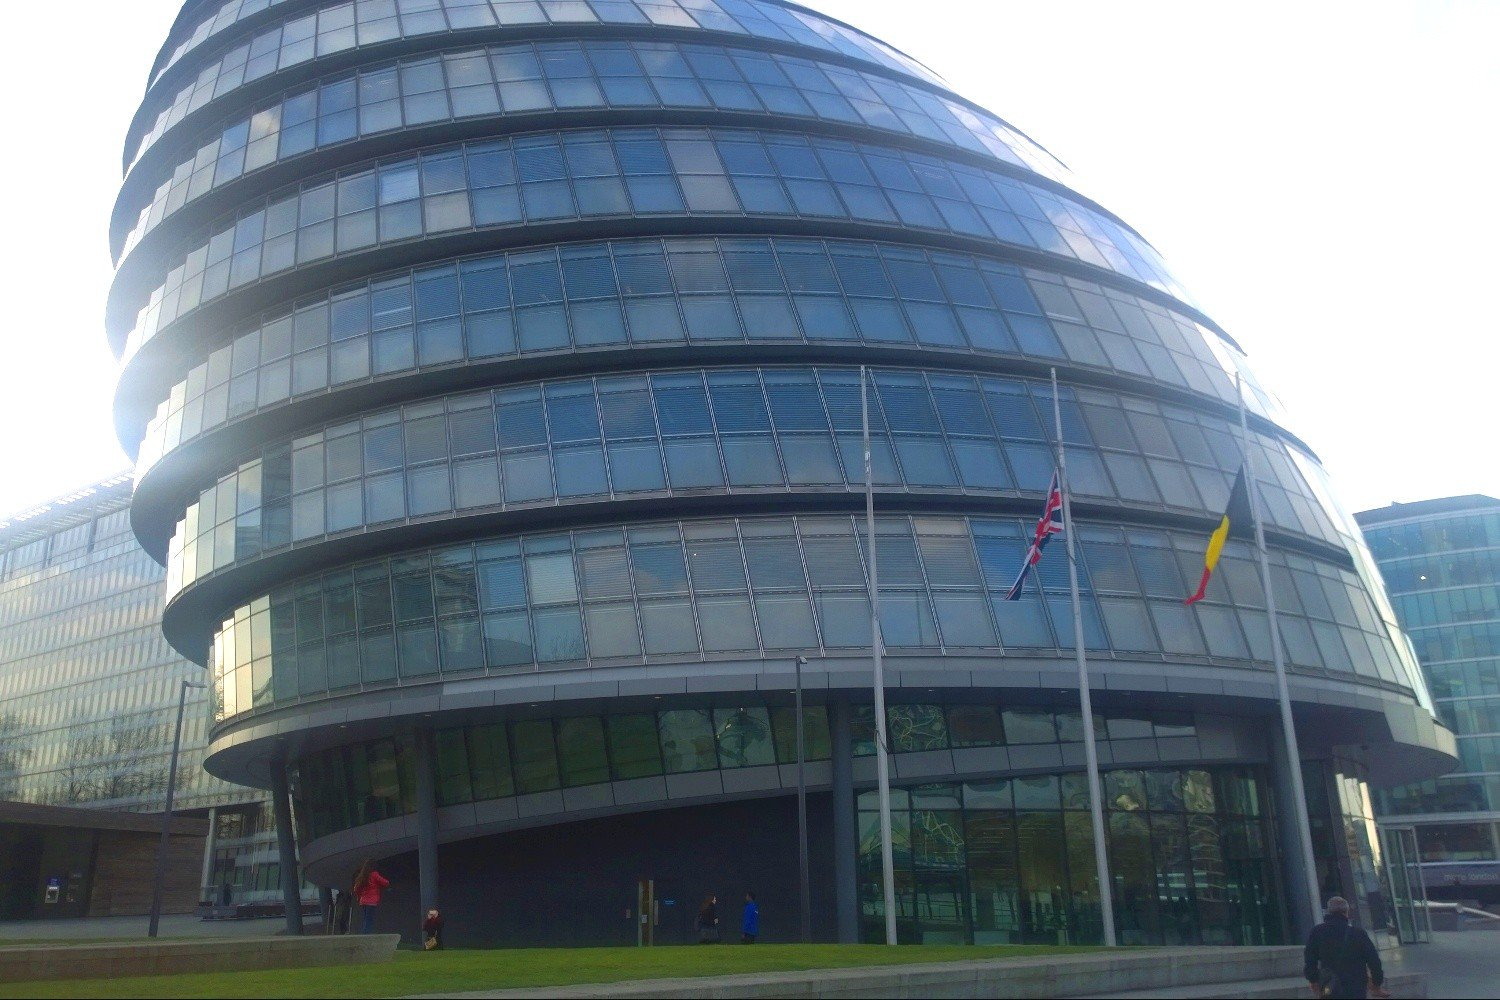 We are flying the Belgian flag outside City Hall today to demonstrate London's solidarity with Brussels https://t.co/9yrXB84yKi